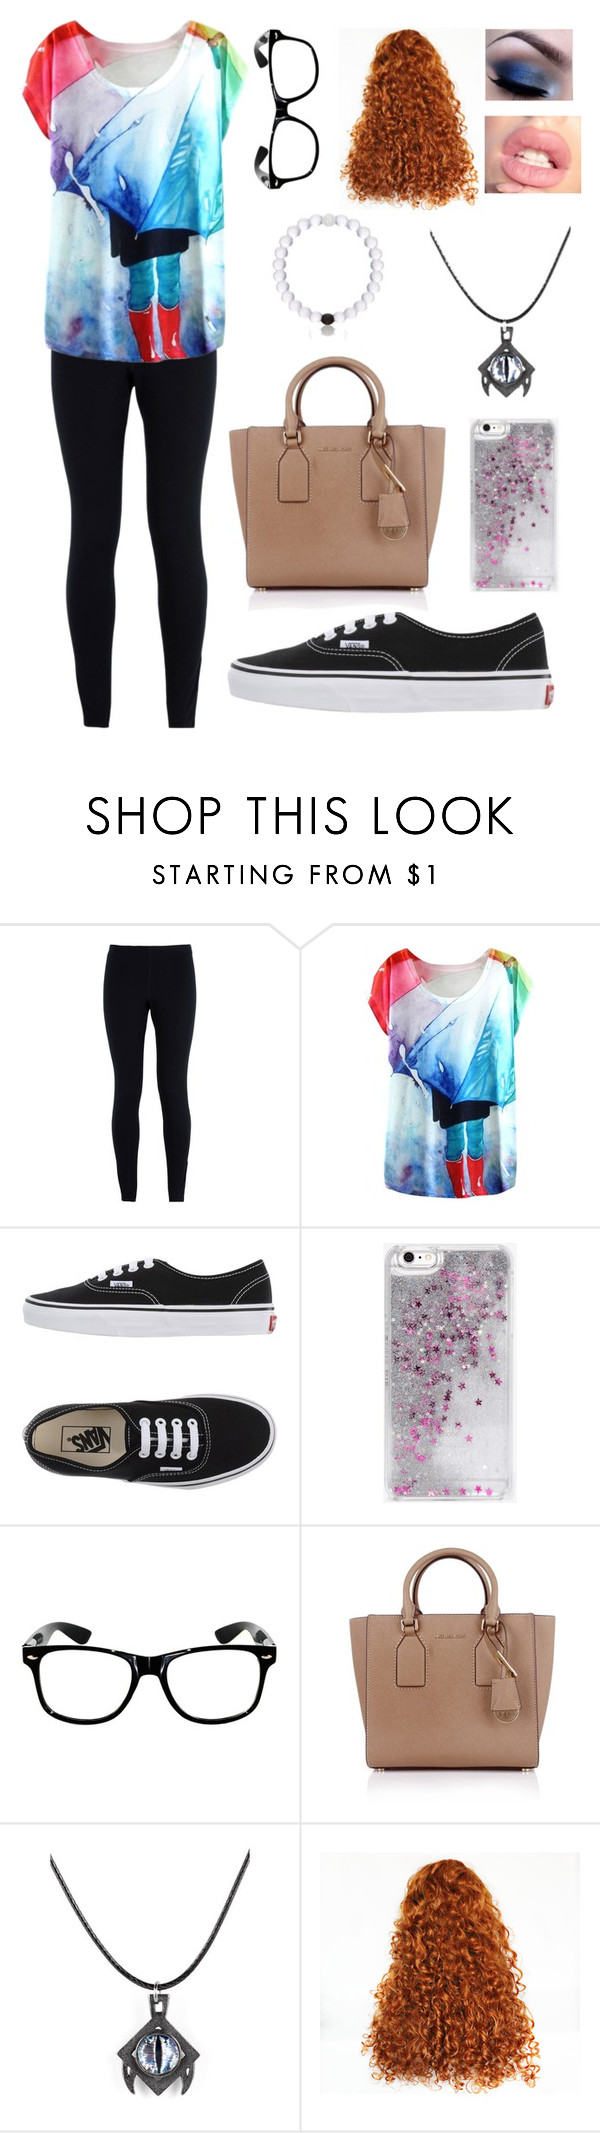 """""""Why fit in when you can stand out"""" by blessed-with-beauty-and-rage ❤ liked on Polyvore featuring NIKE, Vans, Skinnydip, Michael Kors and Everest"""